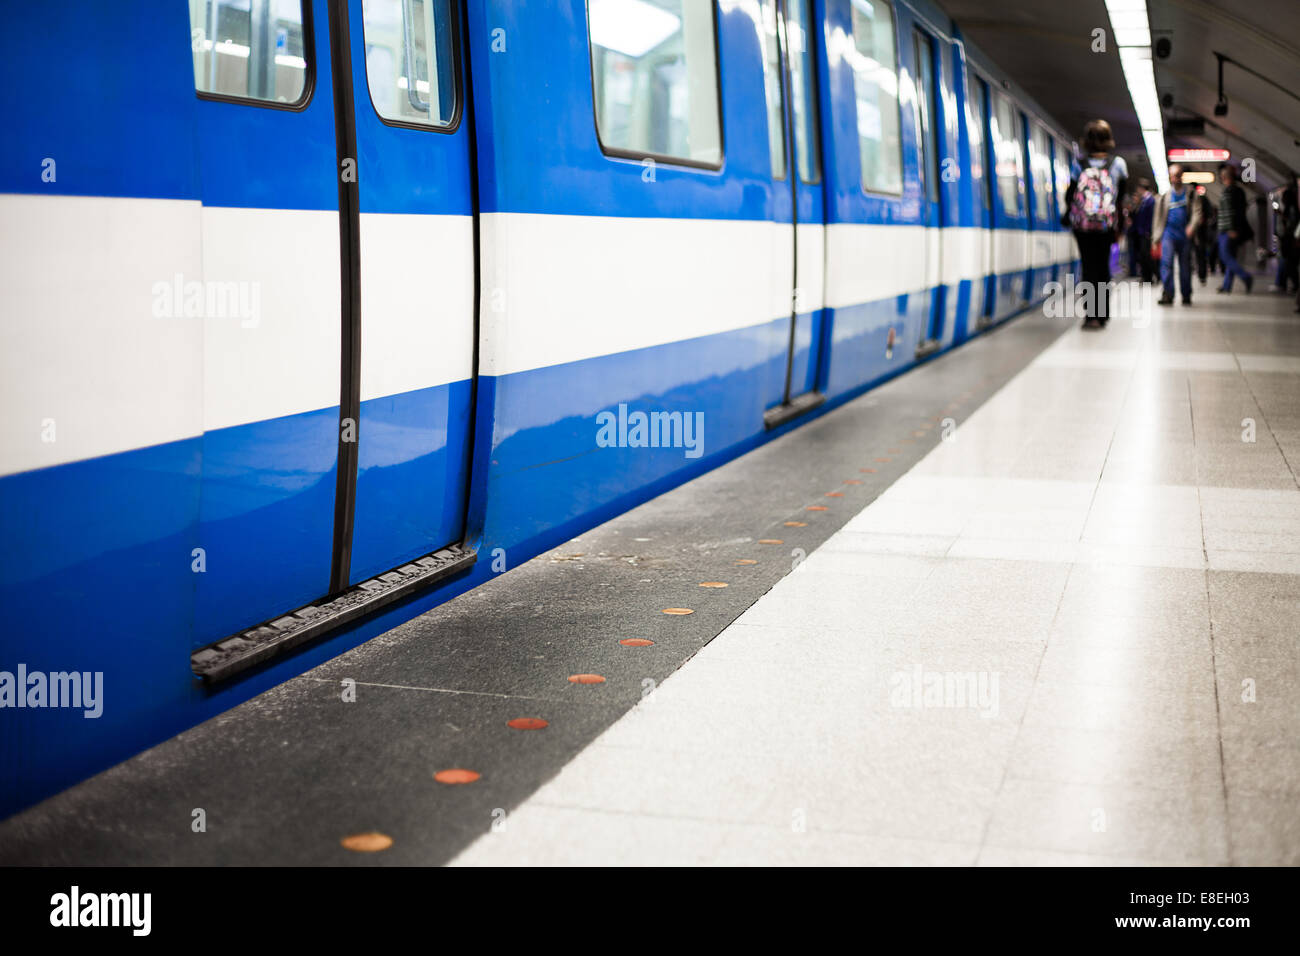 Colorful Underground Subway Train with blurry People on the Platform. Focus is on the door. room for your text. Stock Photo